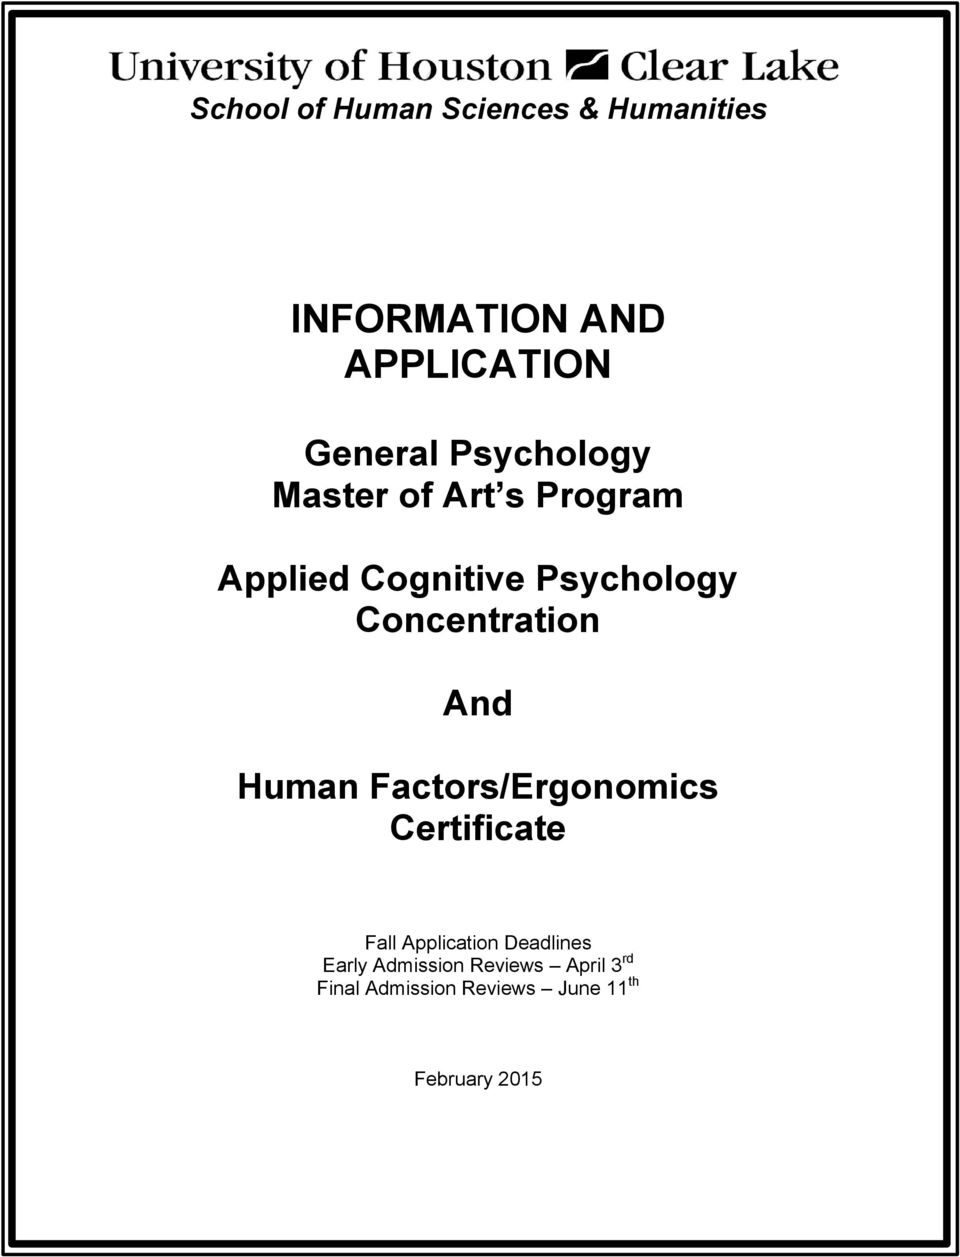 Concentration And Human Factors/Ergonomics Certificate Fall Application